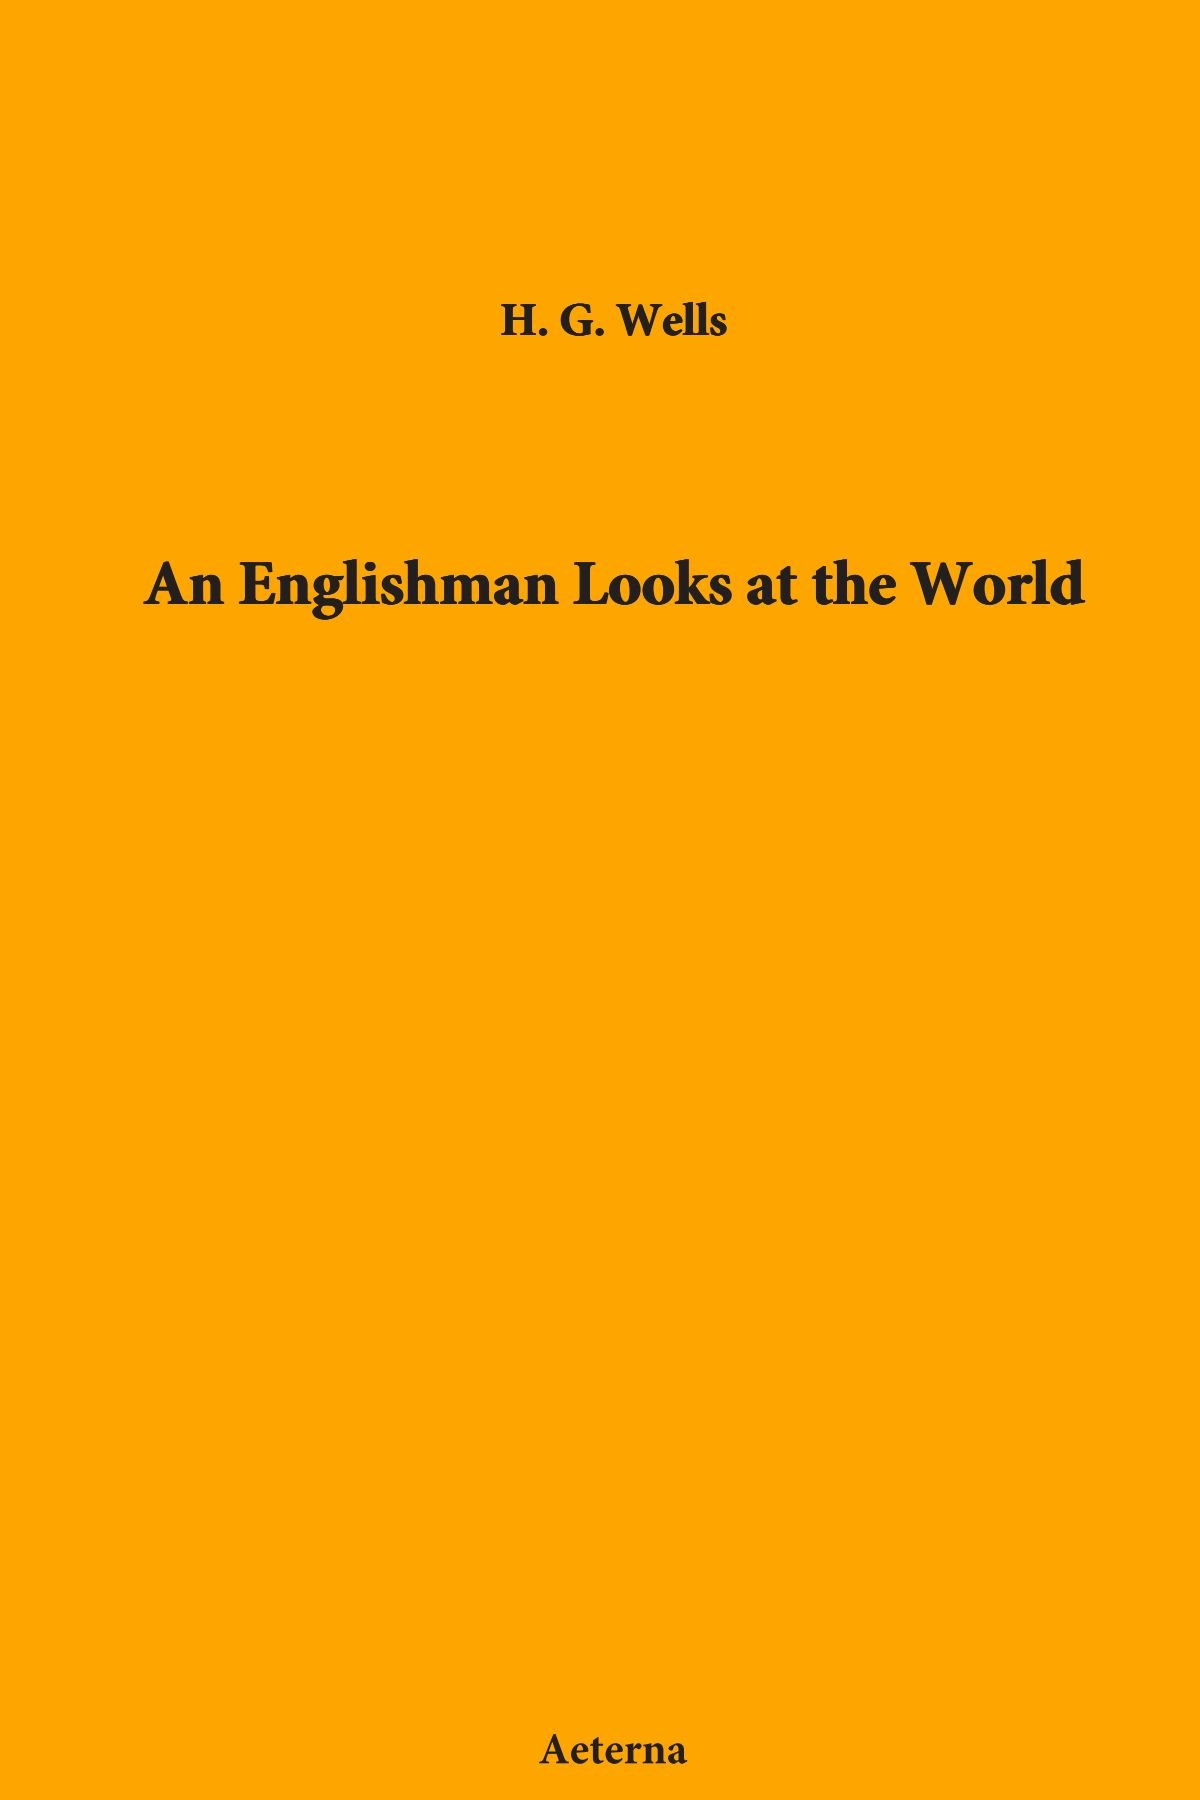 Download An Englishman Looks at the World ebook